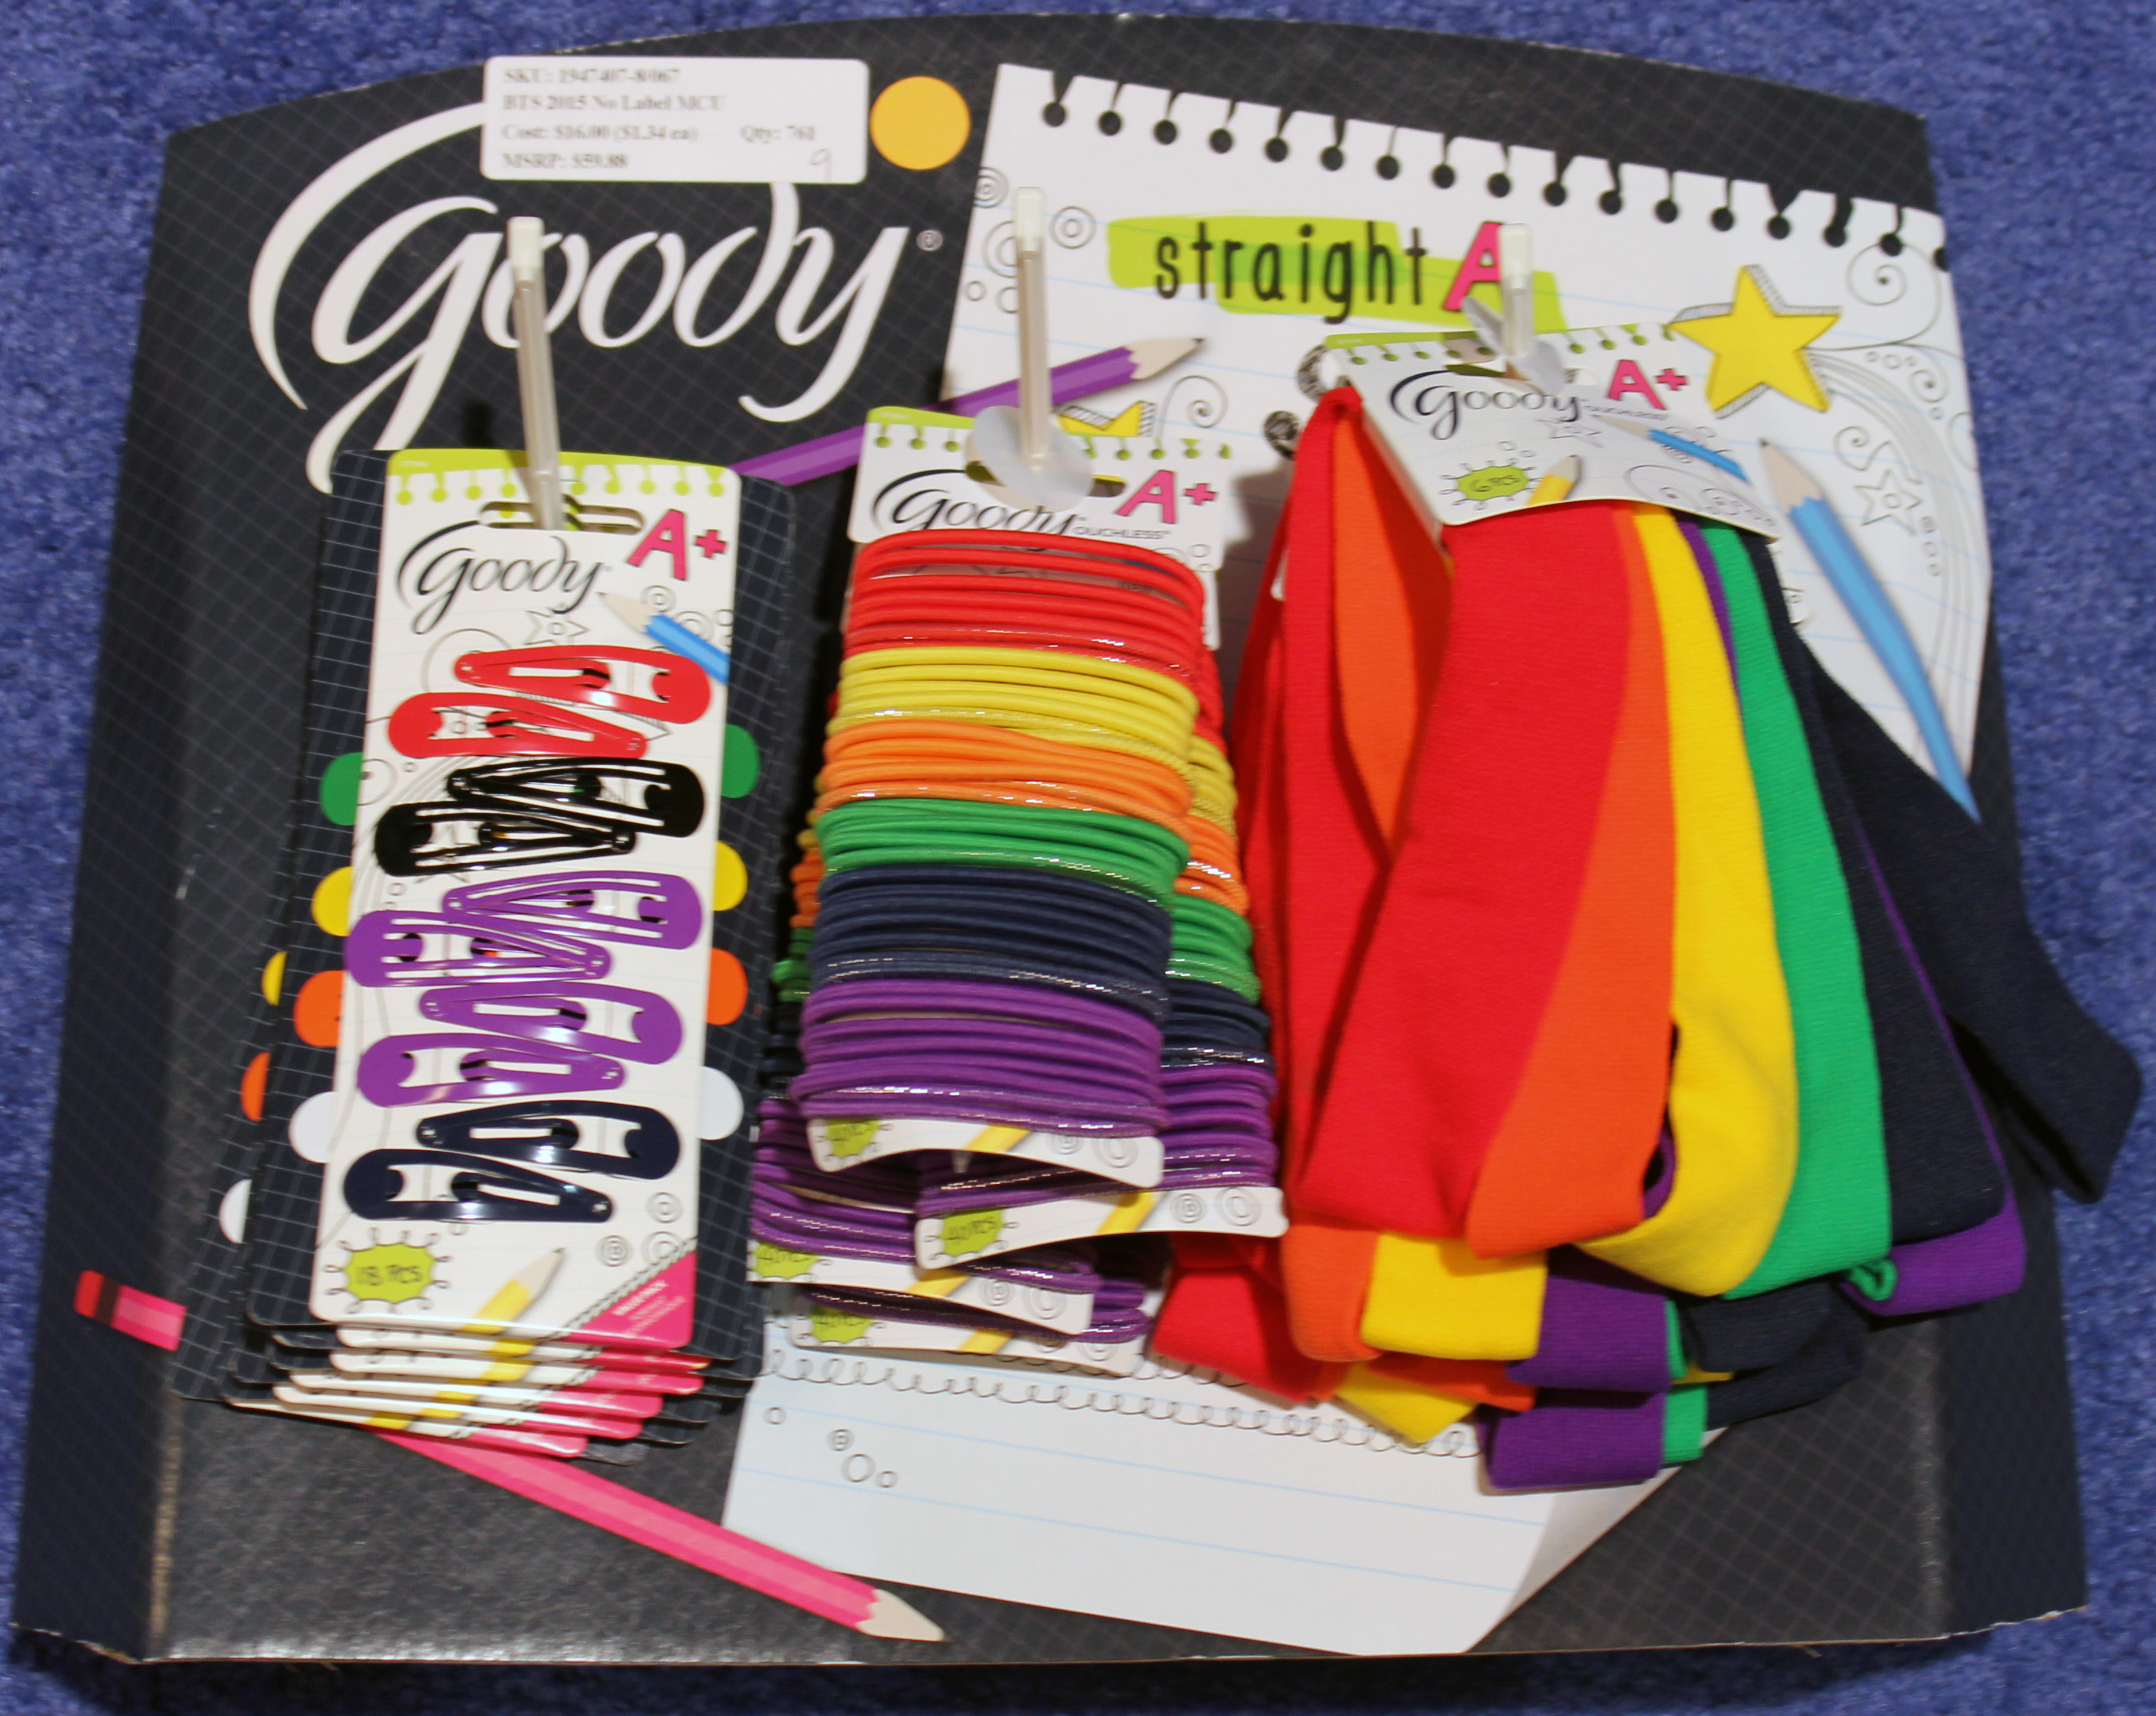 Goody Headwrap, Elastics, and Snap Clip 12 Units Counter Display